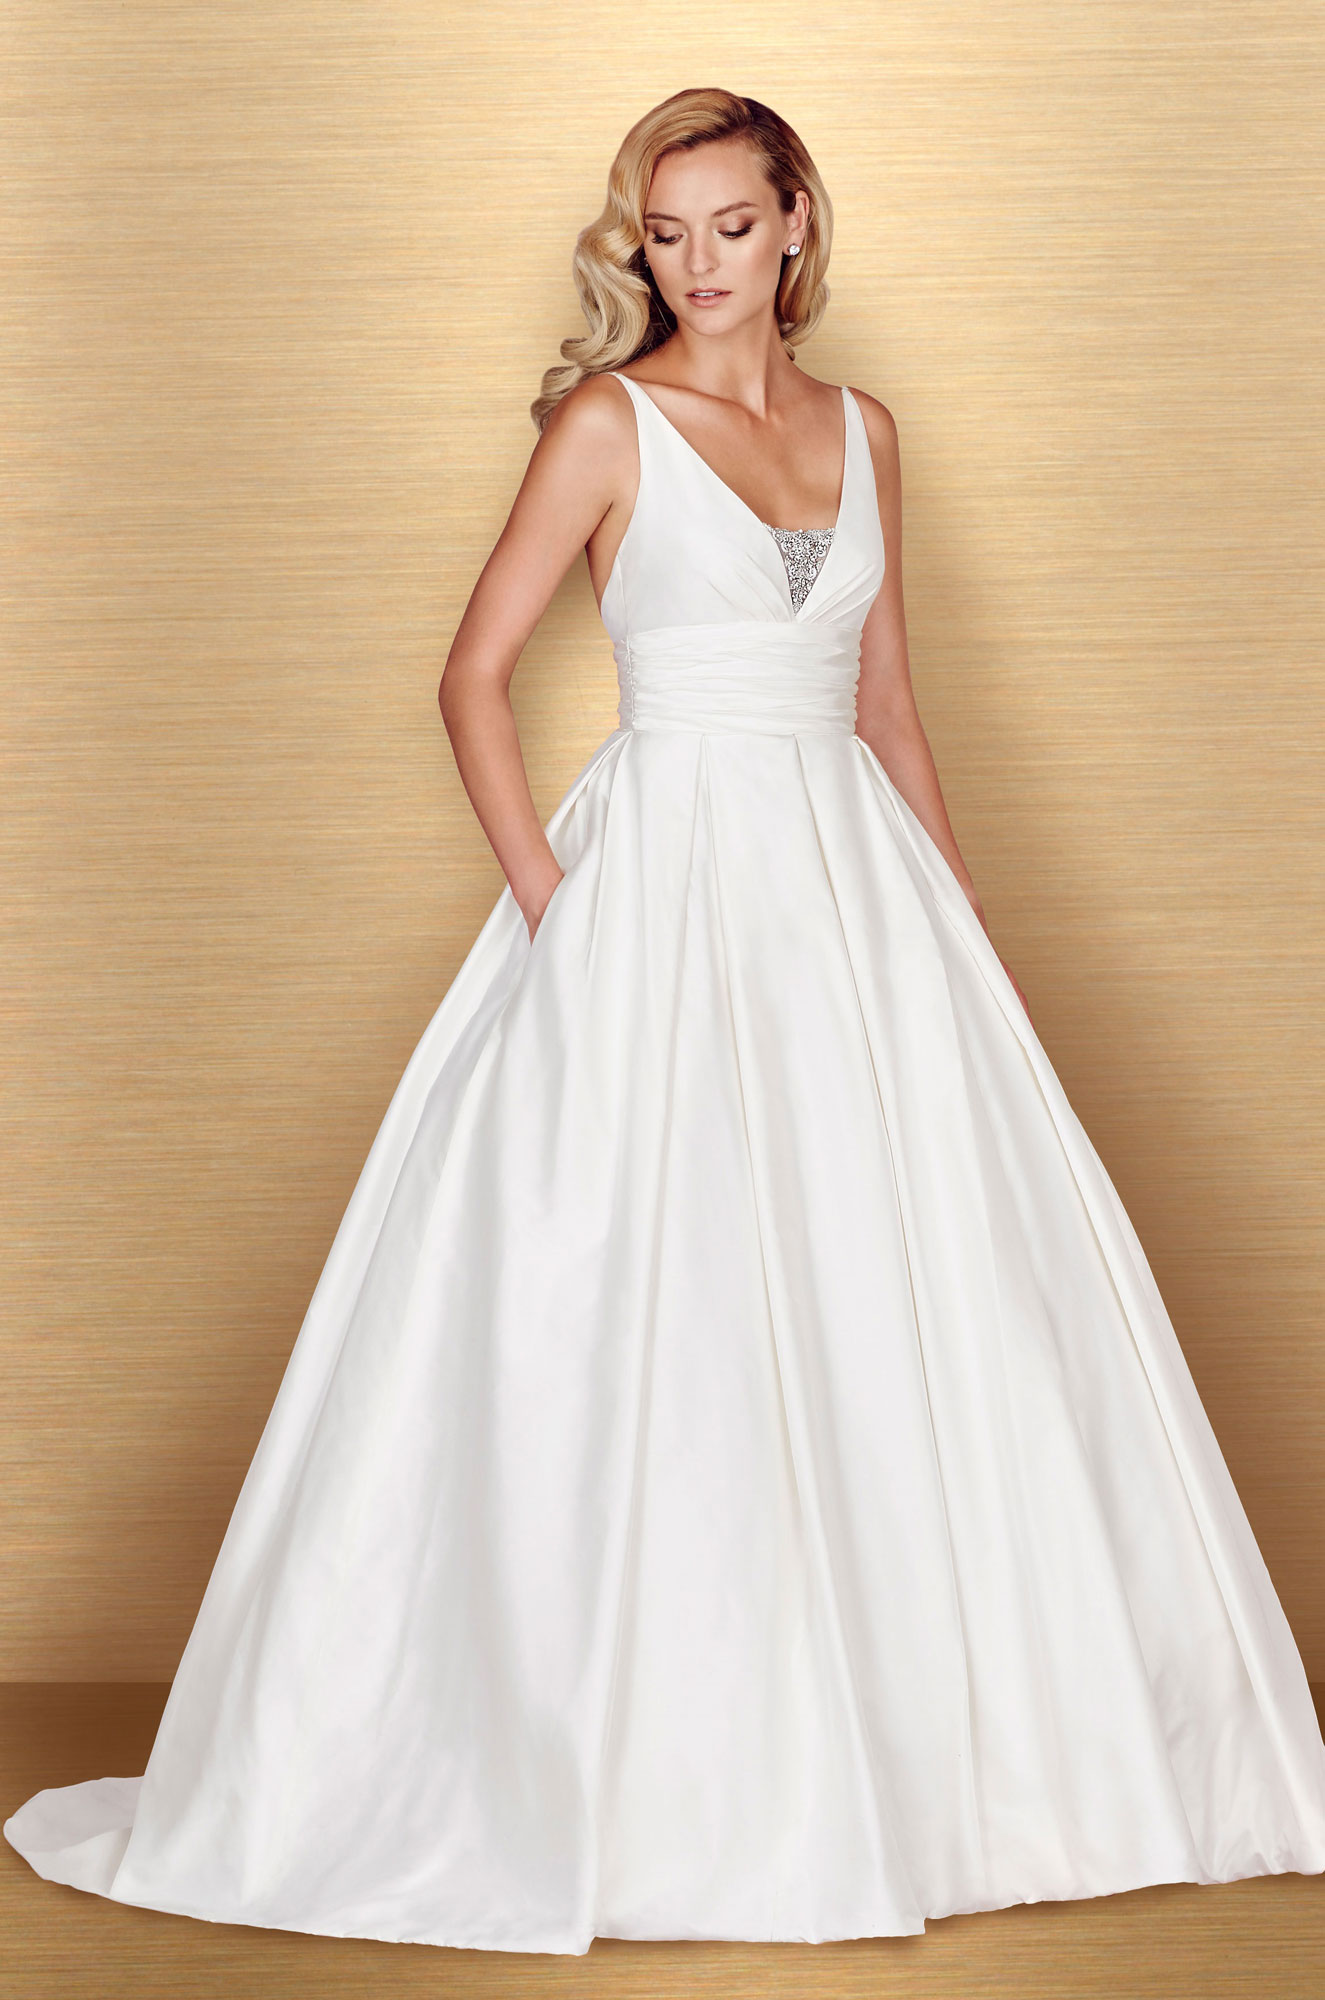 Skirt Wedding Dress - Style #4661 | Paloma Blanca